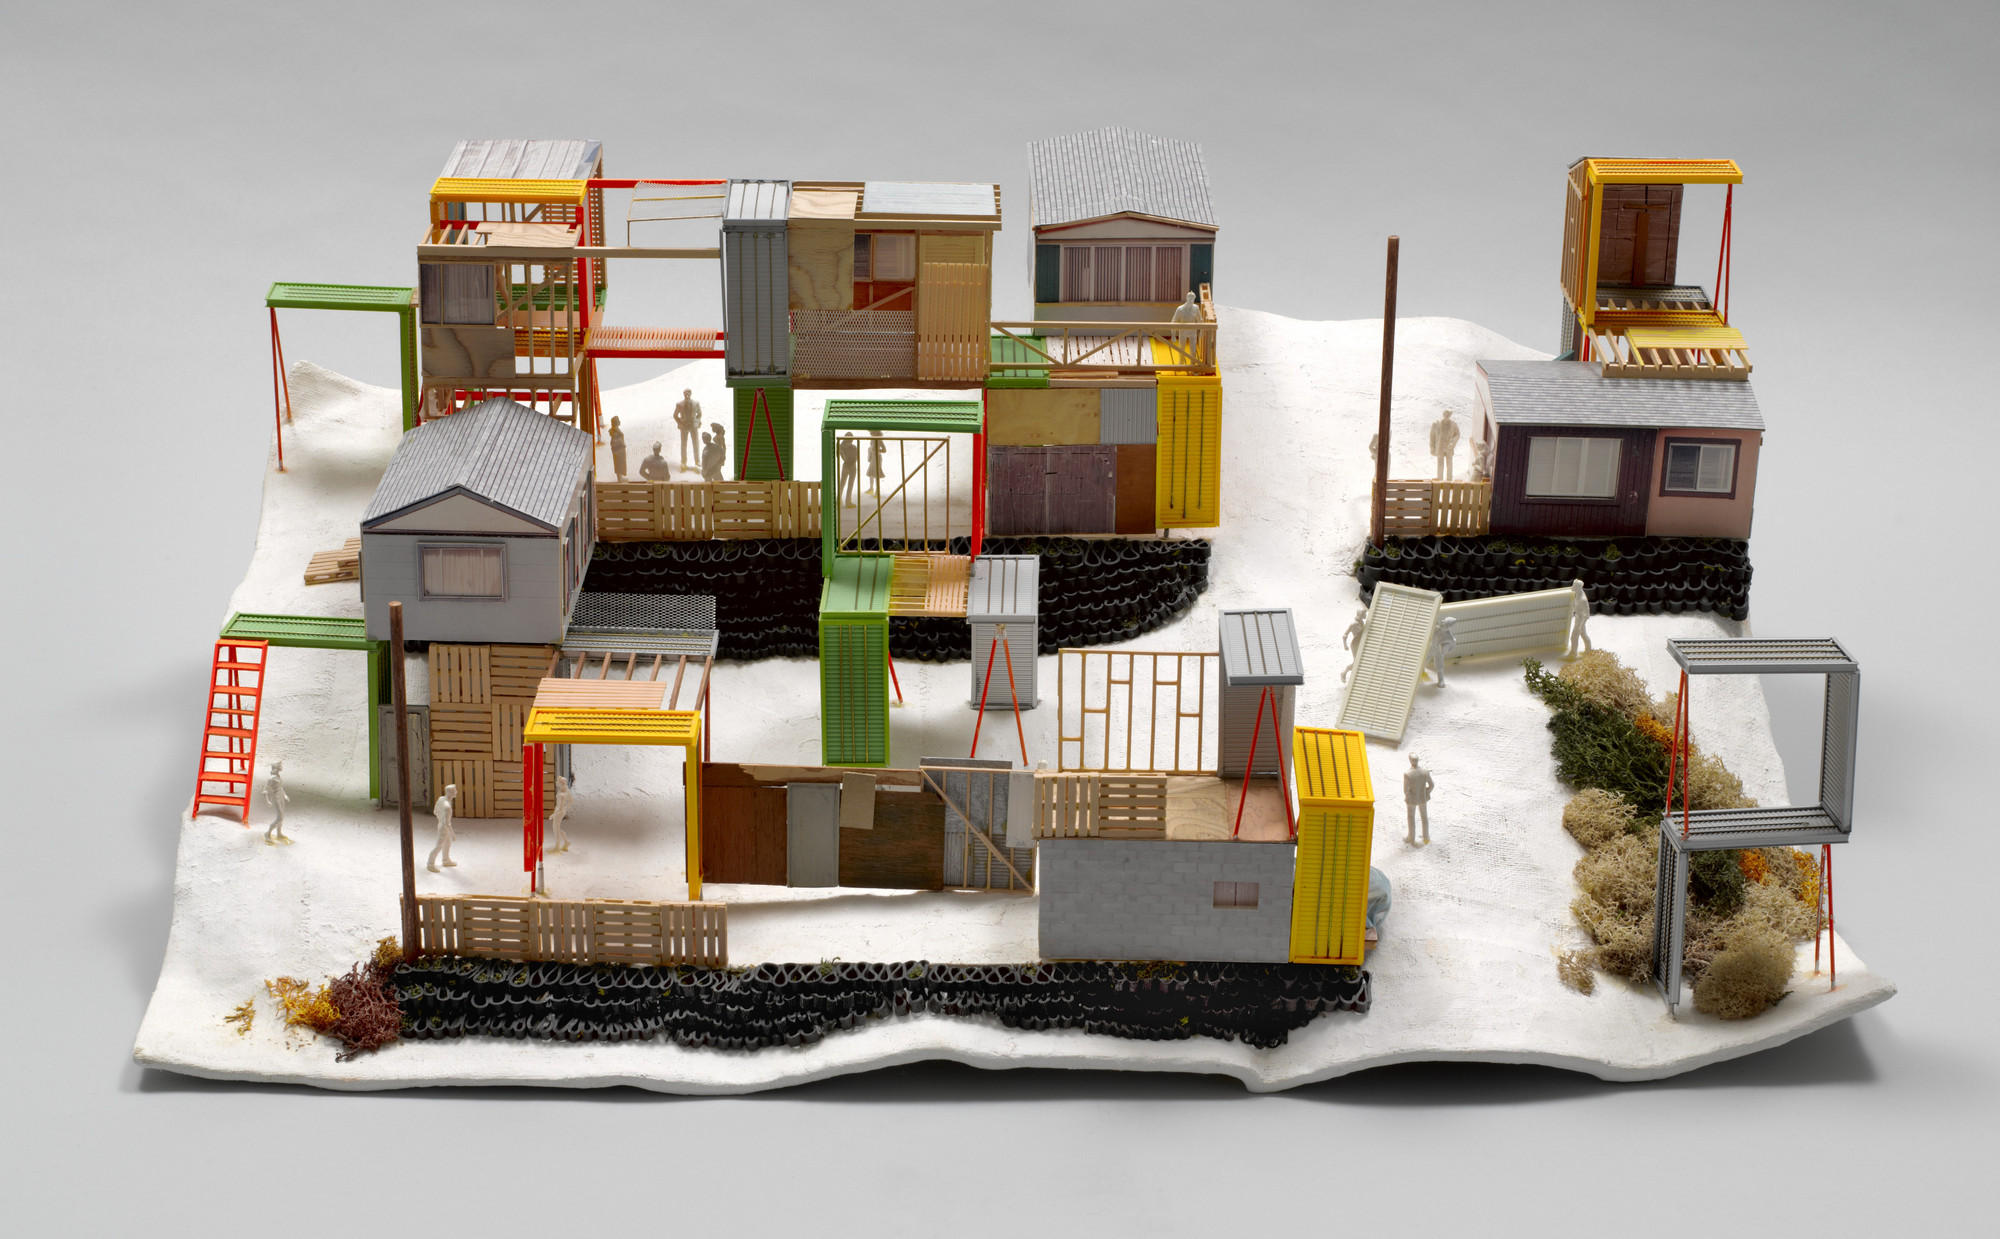 Teddy Cruz. Manufactured Sites: A Housing Urbanism Made of Waste/Maquiladora, project (Model, 2005). 2005-2008